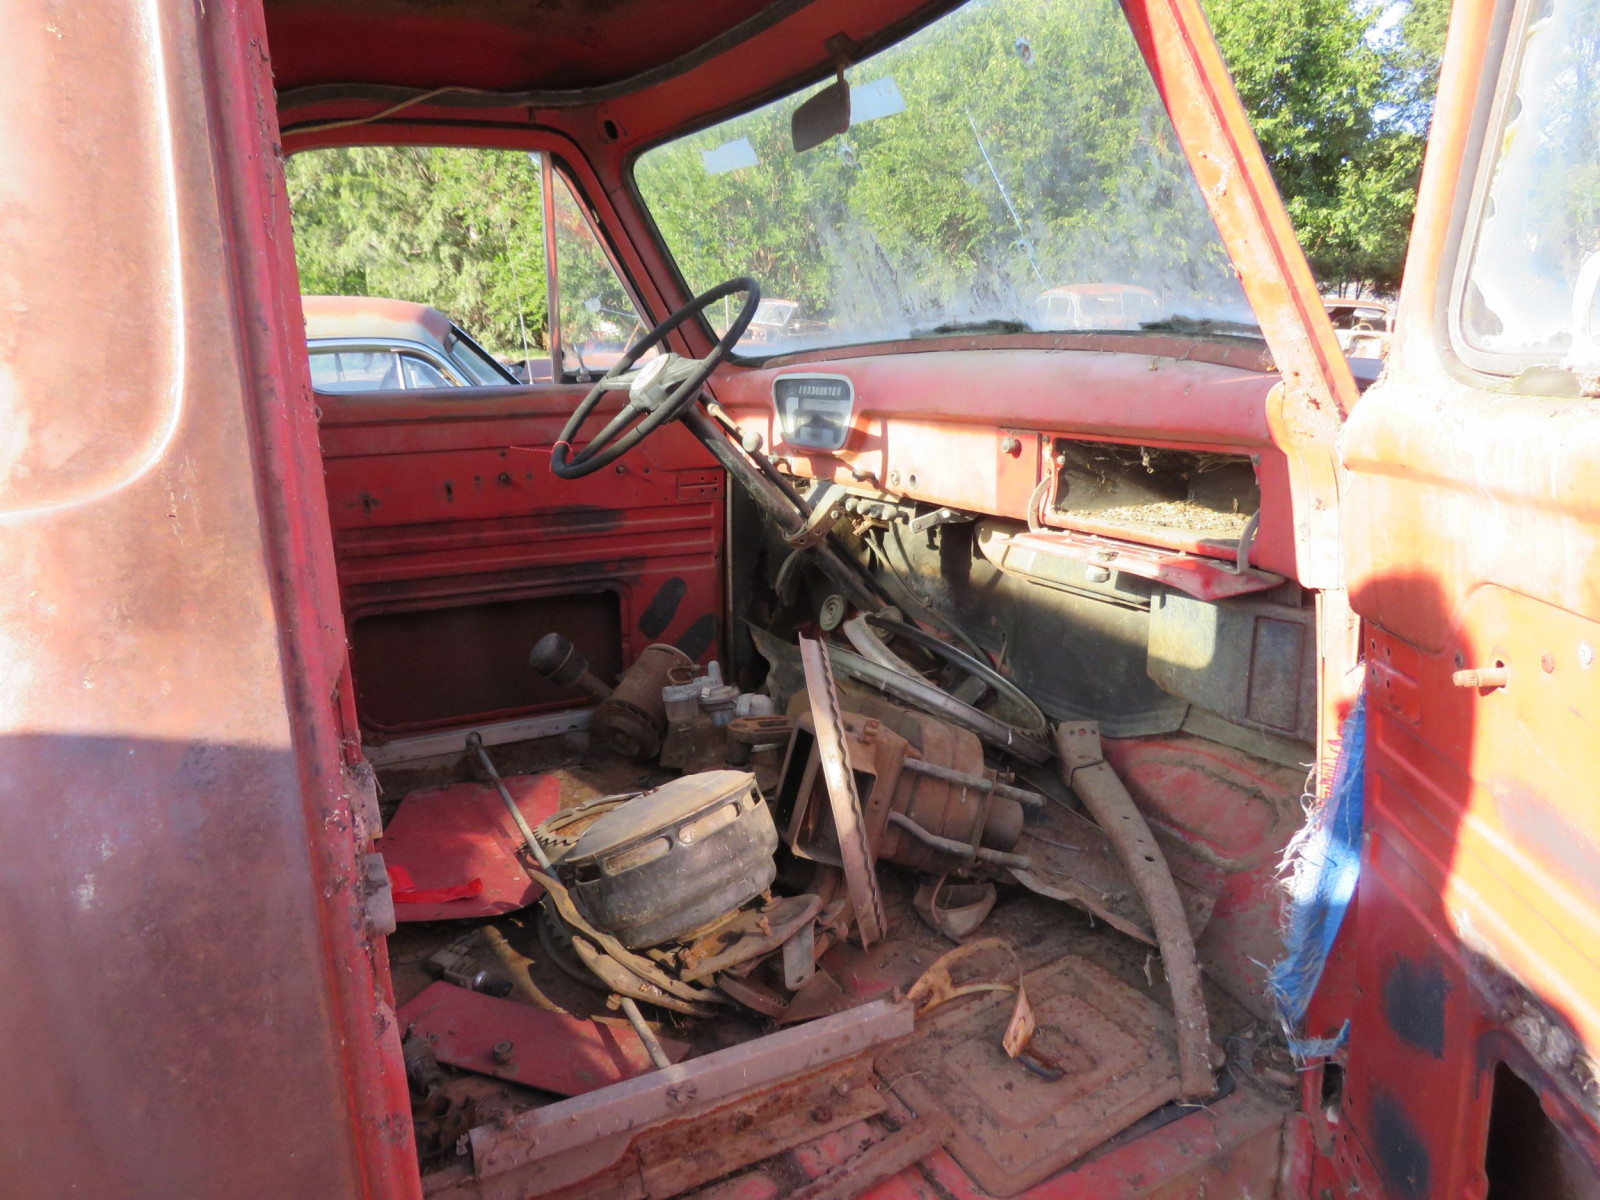 1953 Ford F100 Pickup for Rod or restore - Image 7